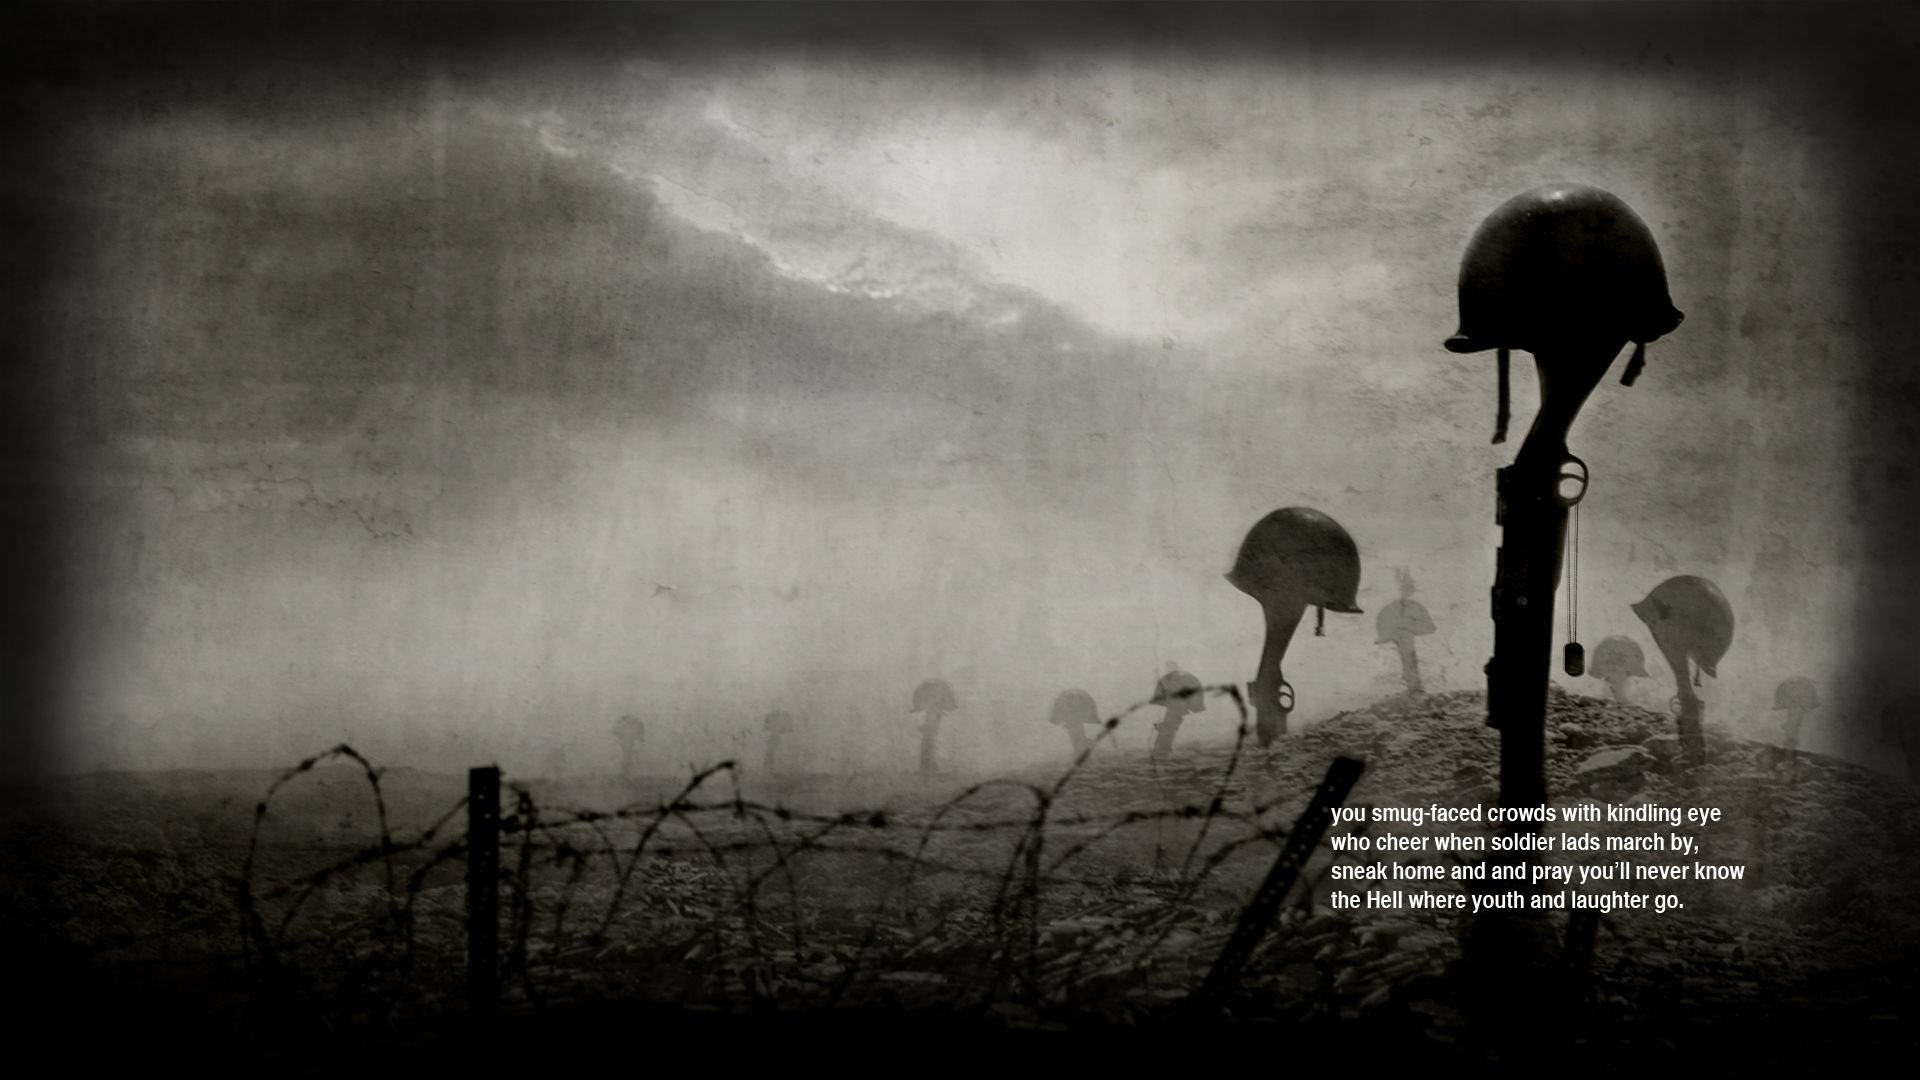 War Guns Quotes Helmets Poetry Siegfried Sassoon Wallpaper